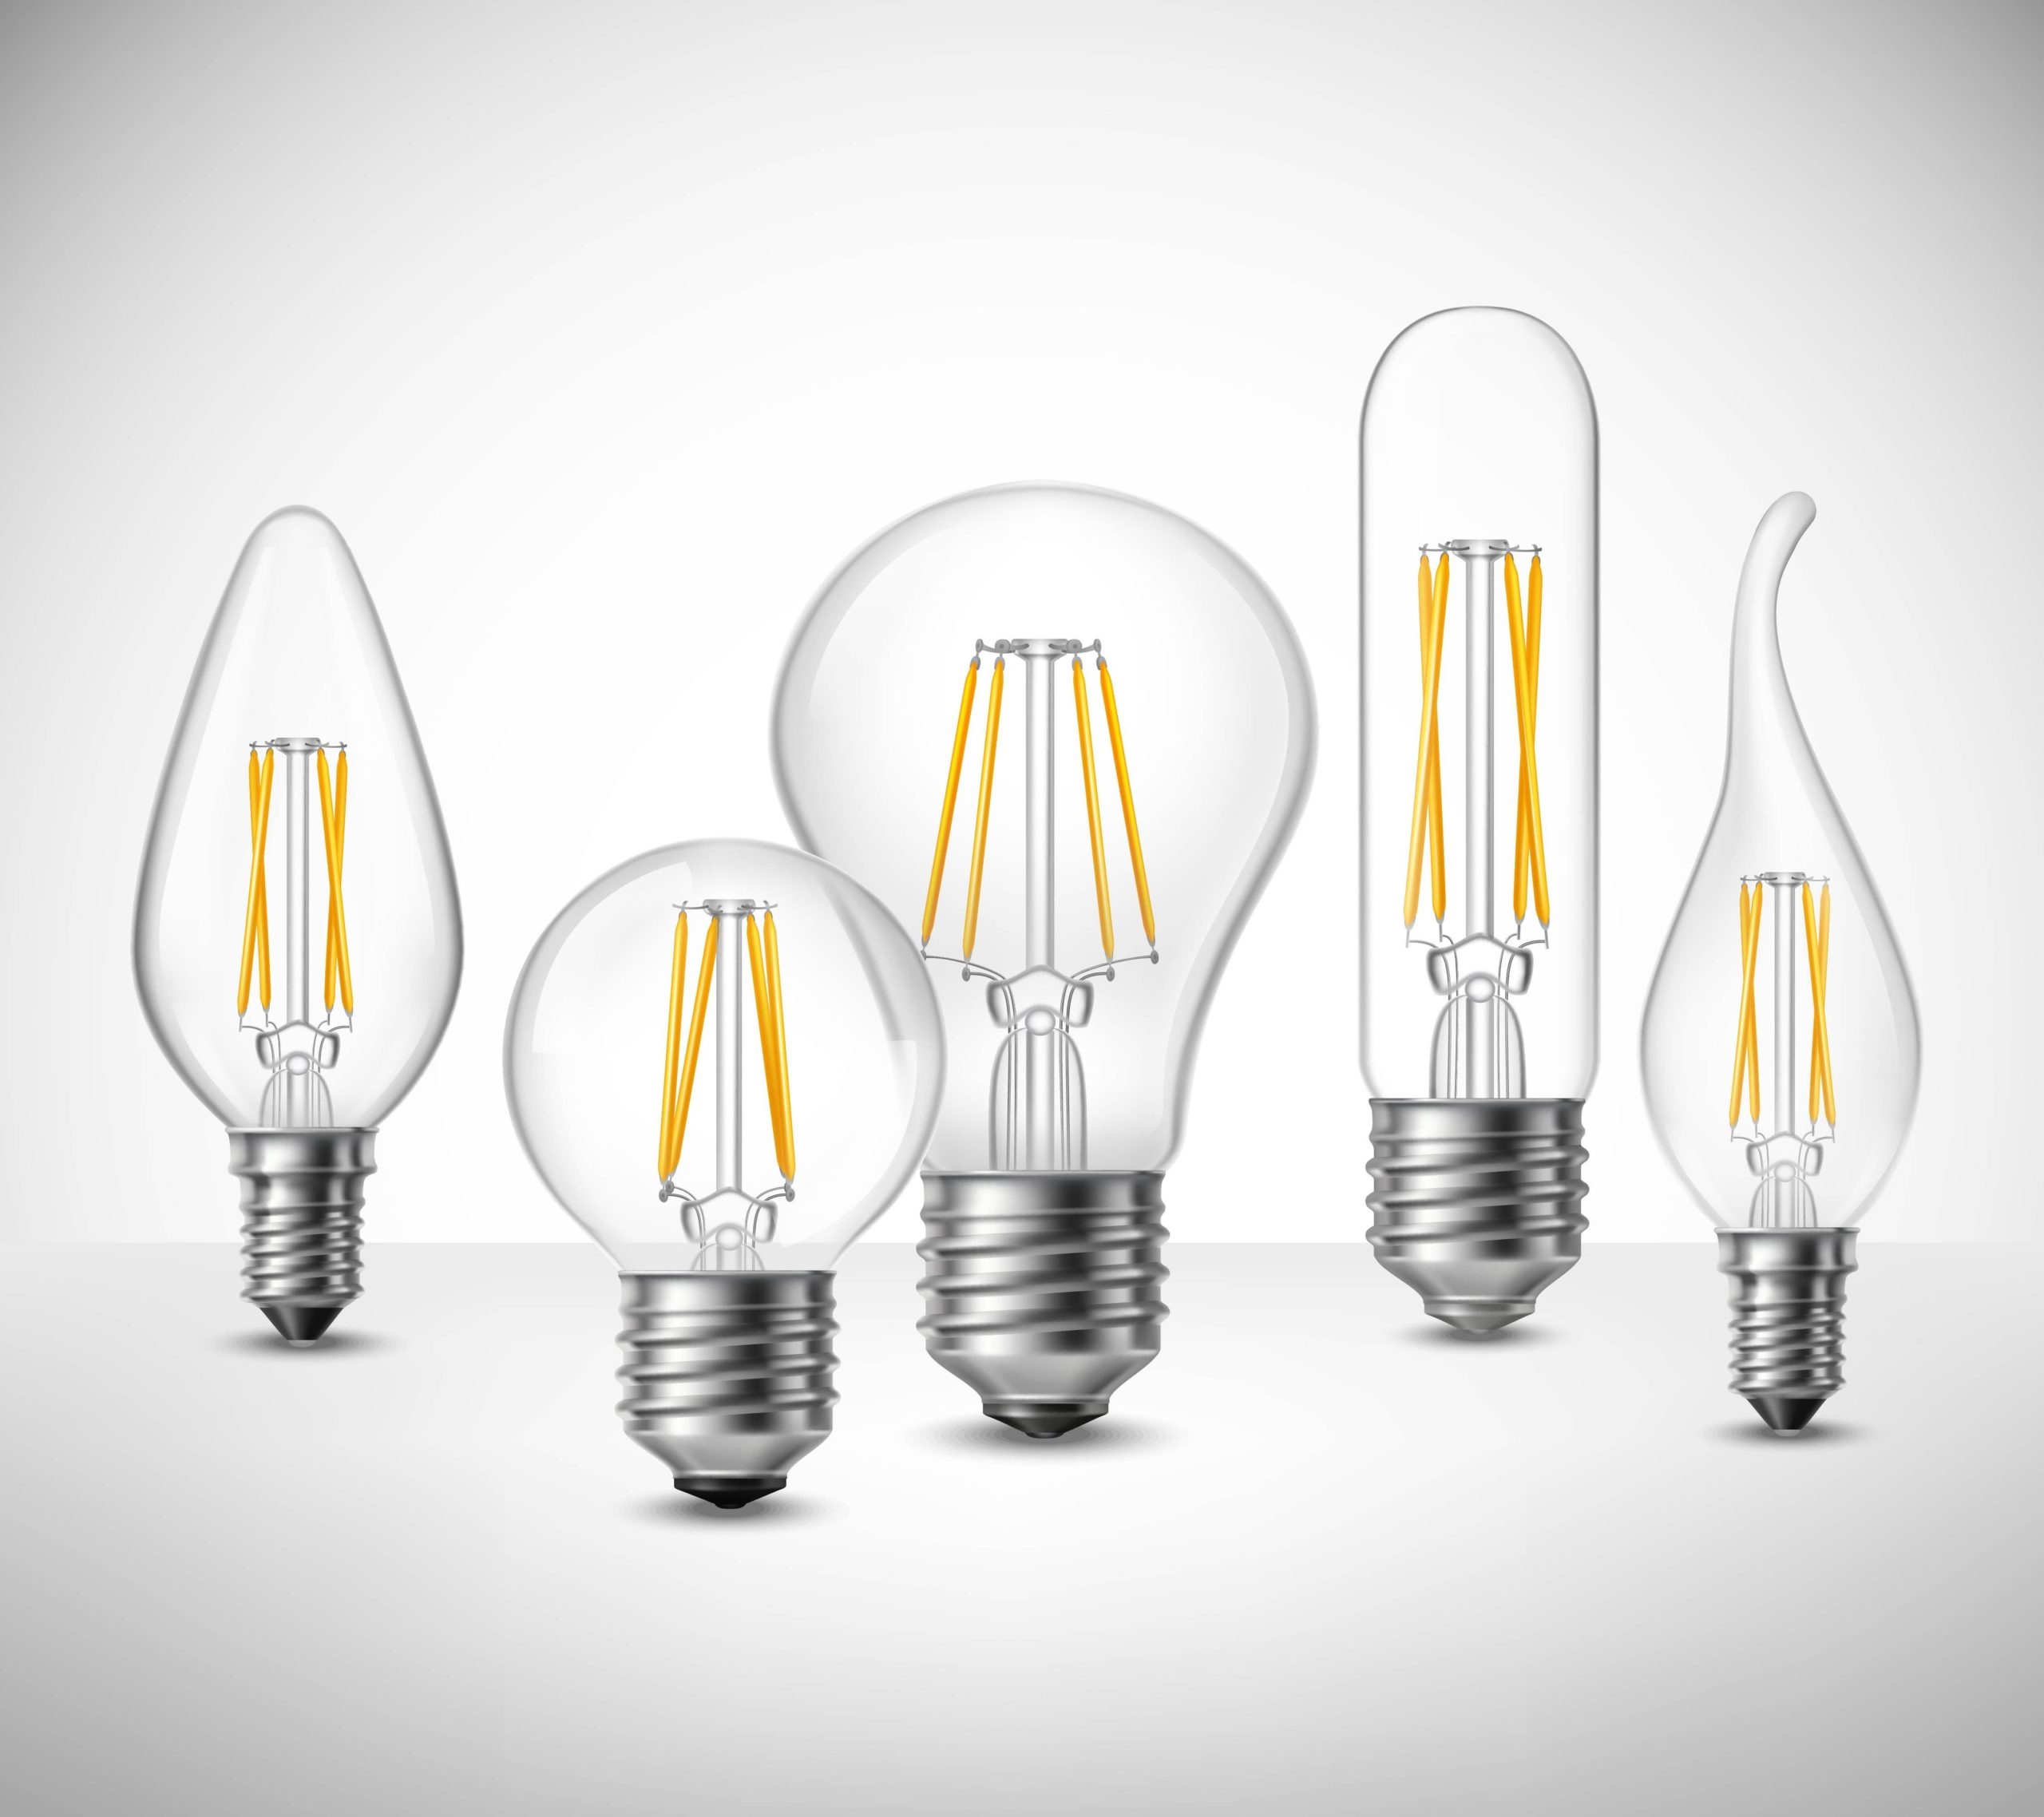 Showing different types of LED light bulbs